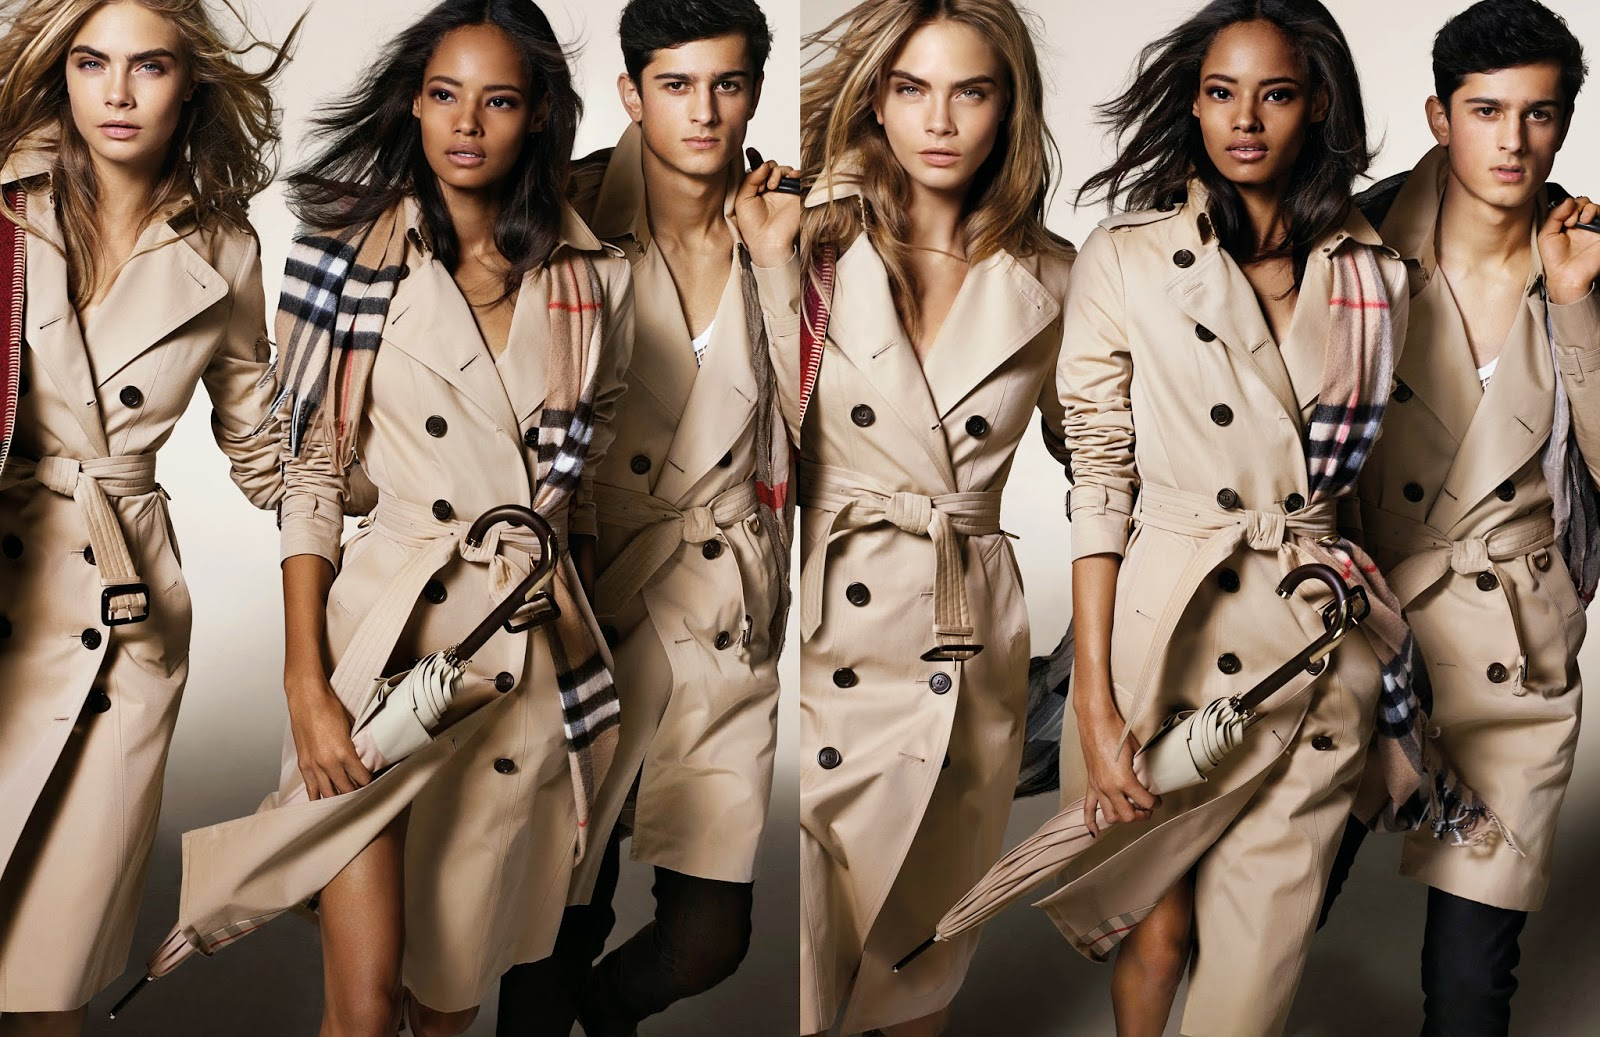 Burberry's Autumn/Winter 2014 Ad Campaign